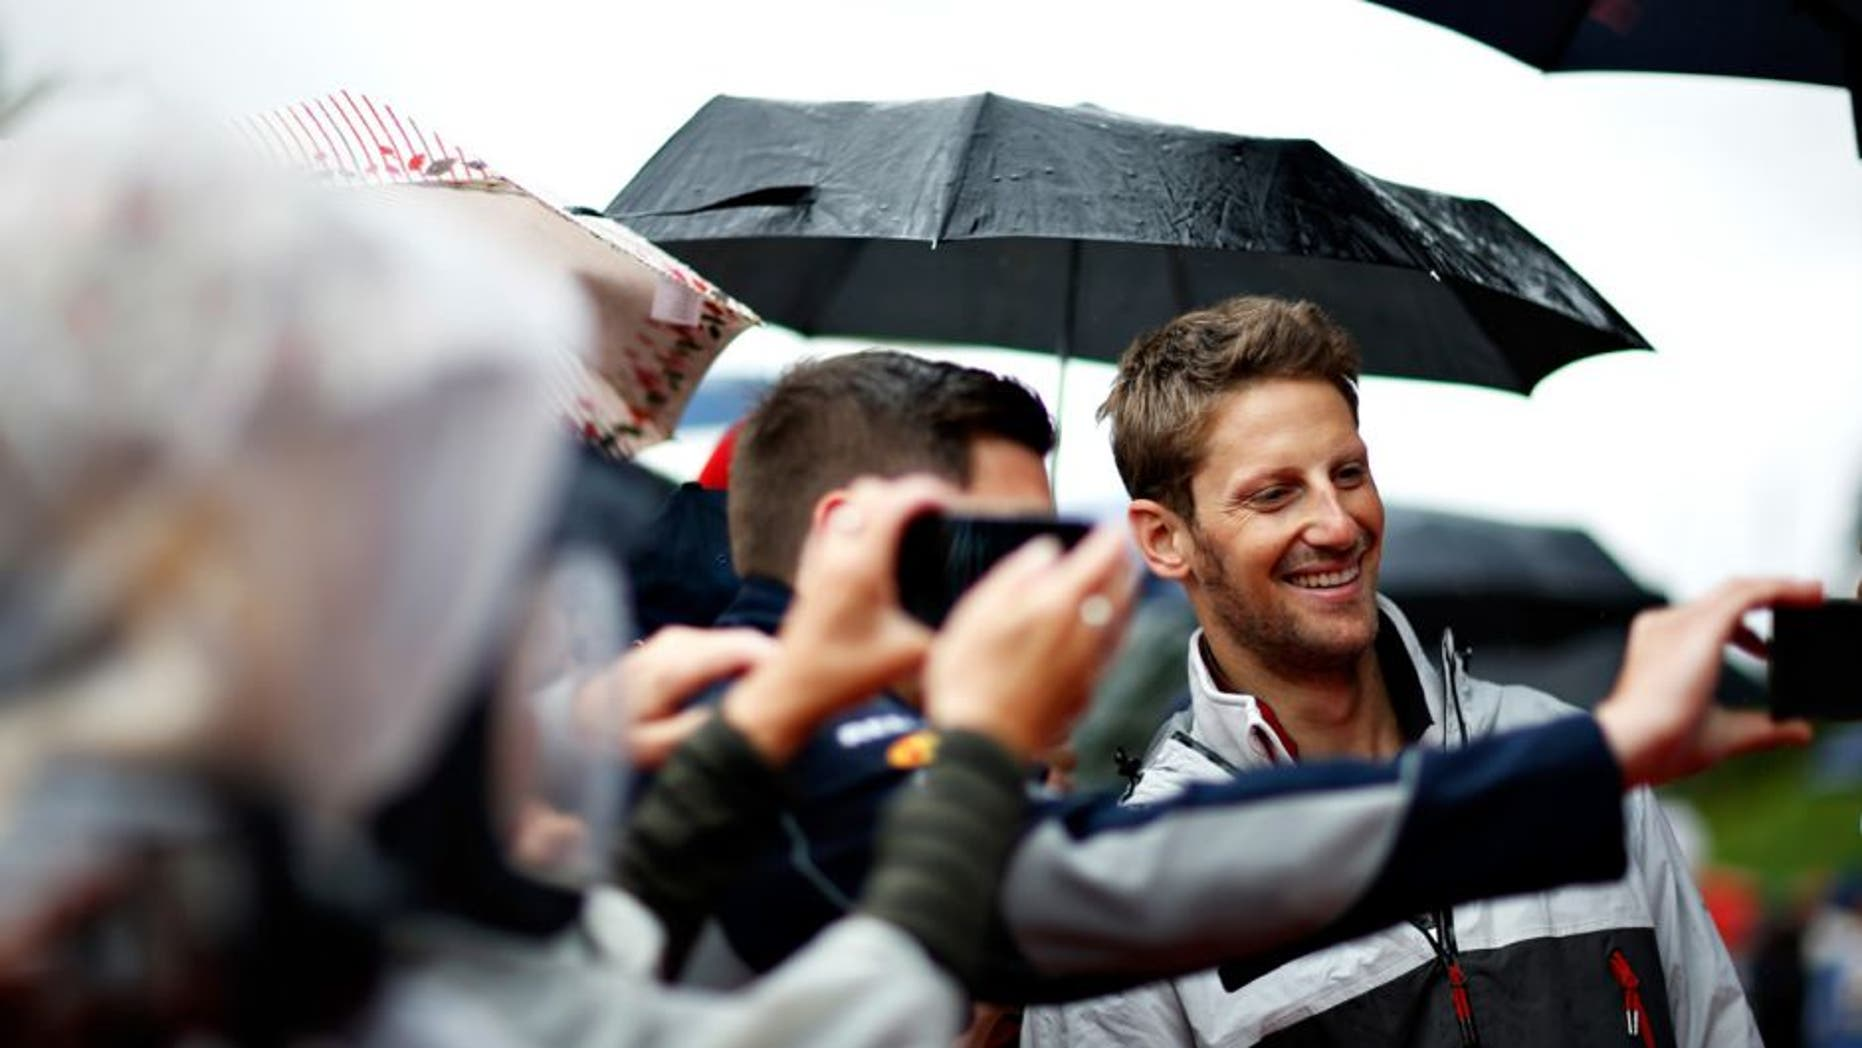 SPIELBERG, AUSTRIA - JULY 03: Romain Grosjean of France and Haas F1 poses for a photo with a fan before the Formula One Grand Prix of Austria at Red Bull Ring on July 3, 2016 in Spielberg, Austria. (Photo by Charles Coates/Getty Images)